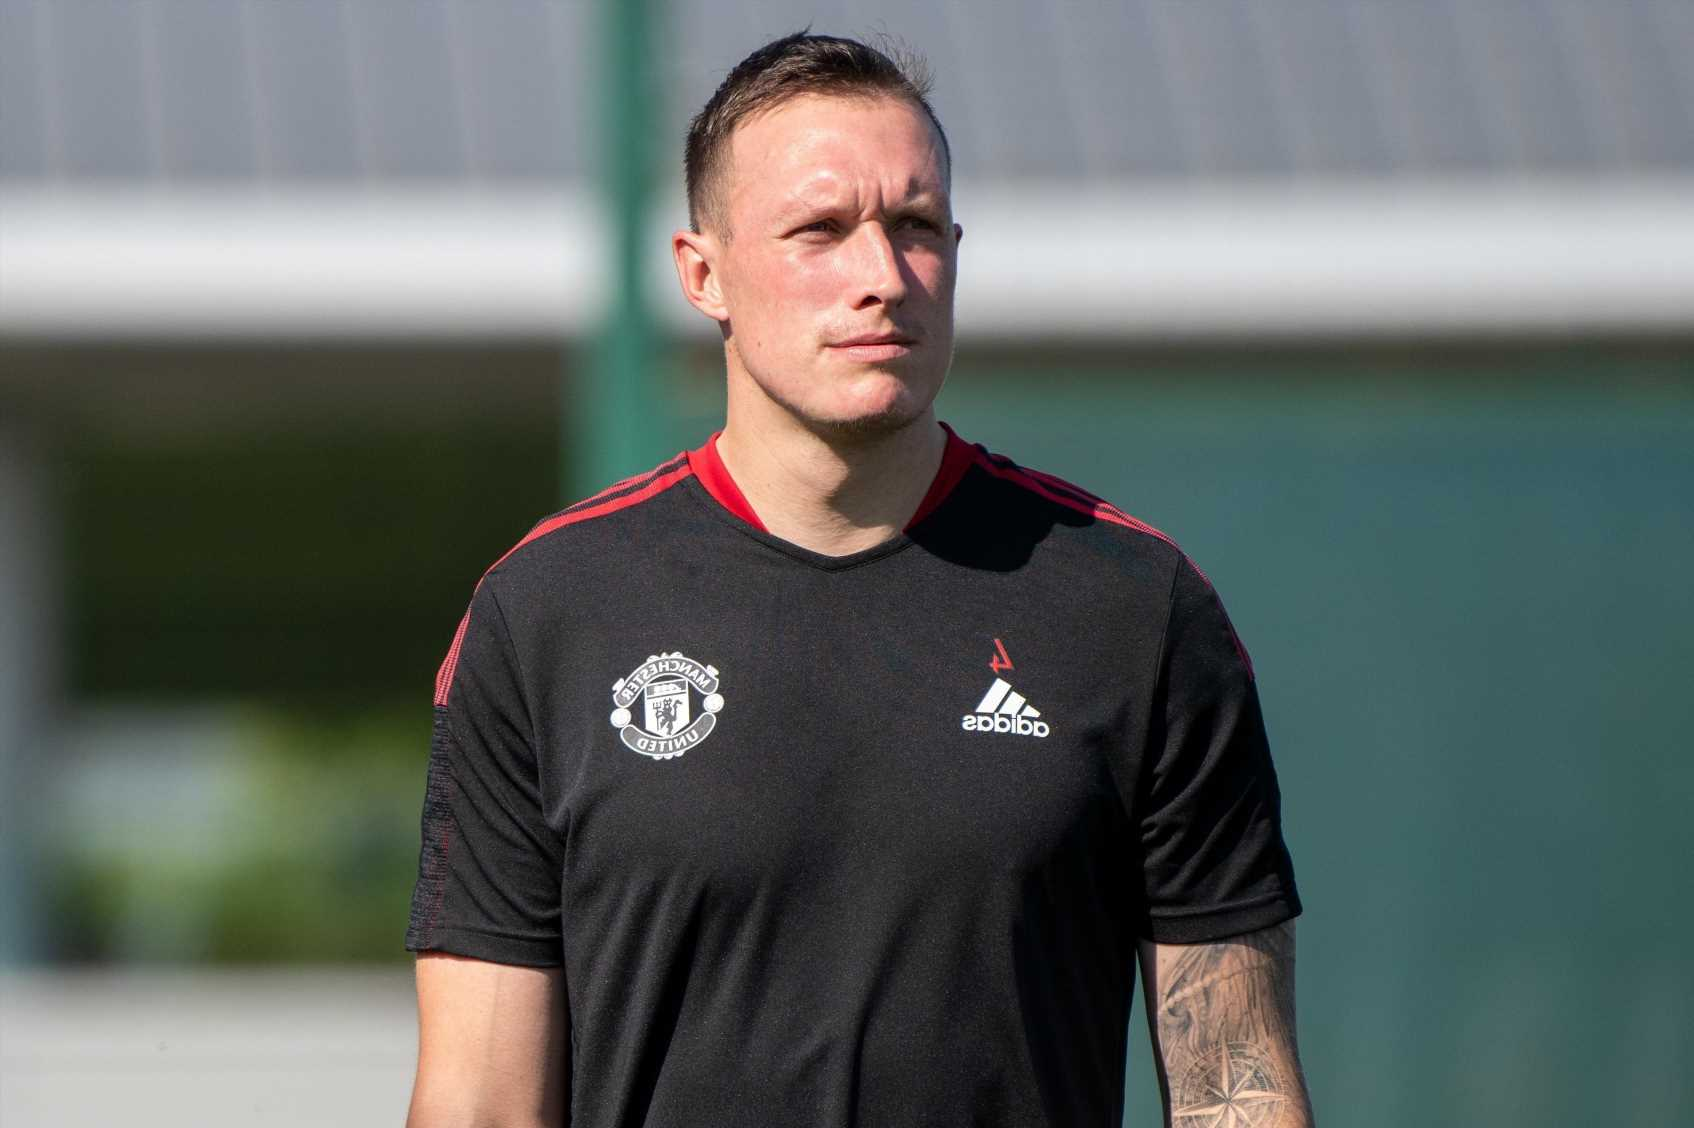 Man Utd star Phil Jones reveals he broke down in tears with wife after street abuse while out with kids amid injury woes